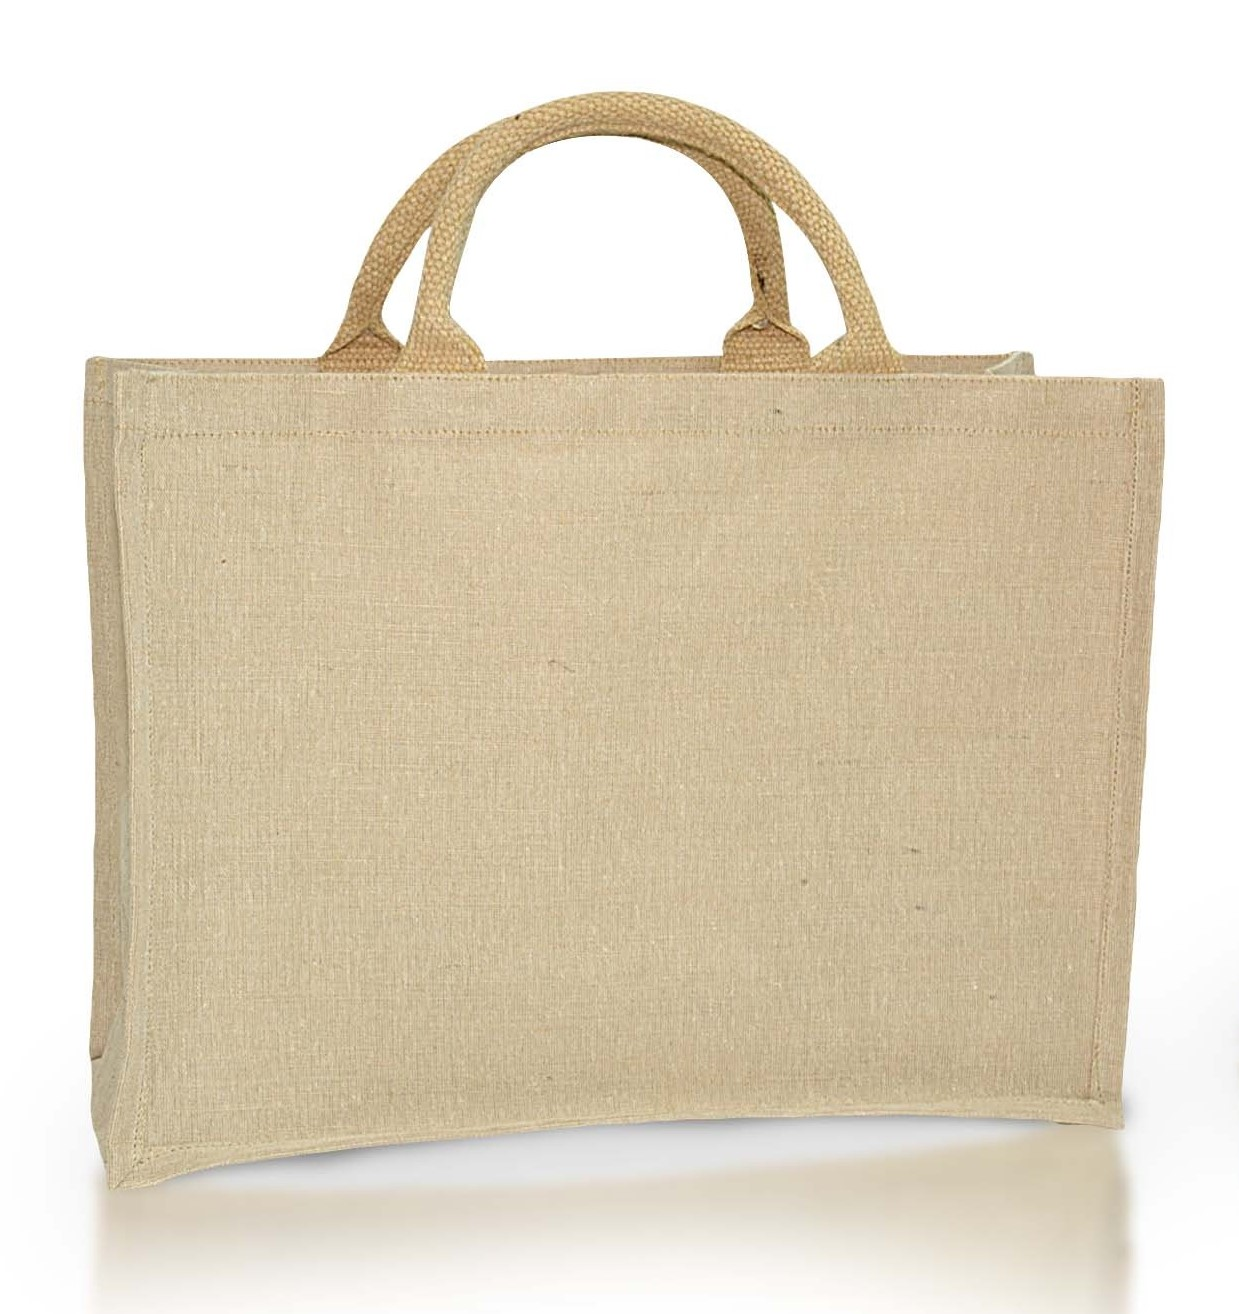 Eco-friendly Bags - Buy Bags Online From Manufacturer 089569d911230